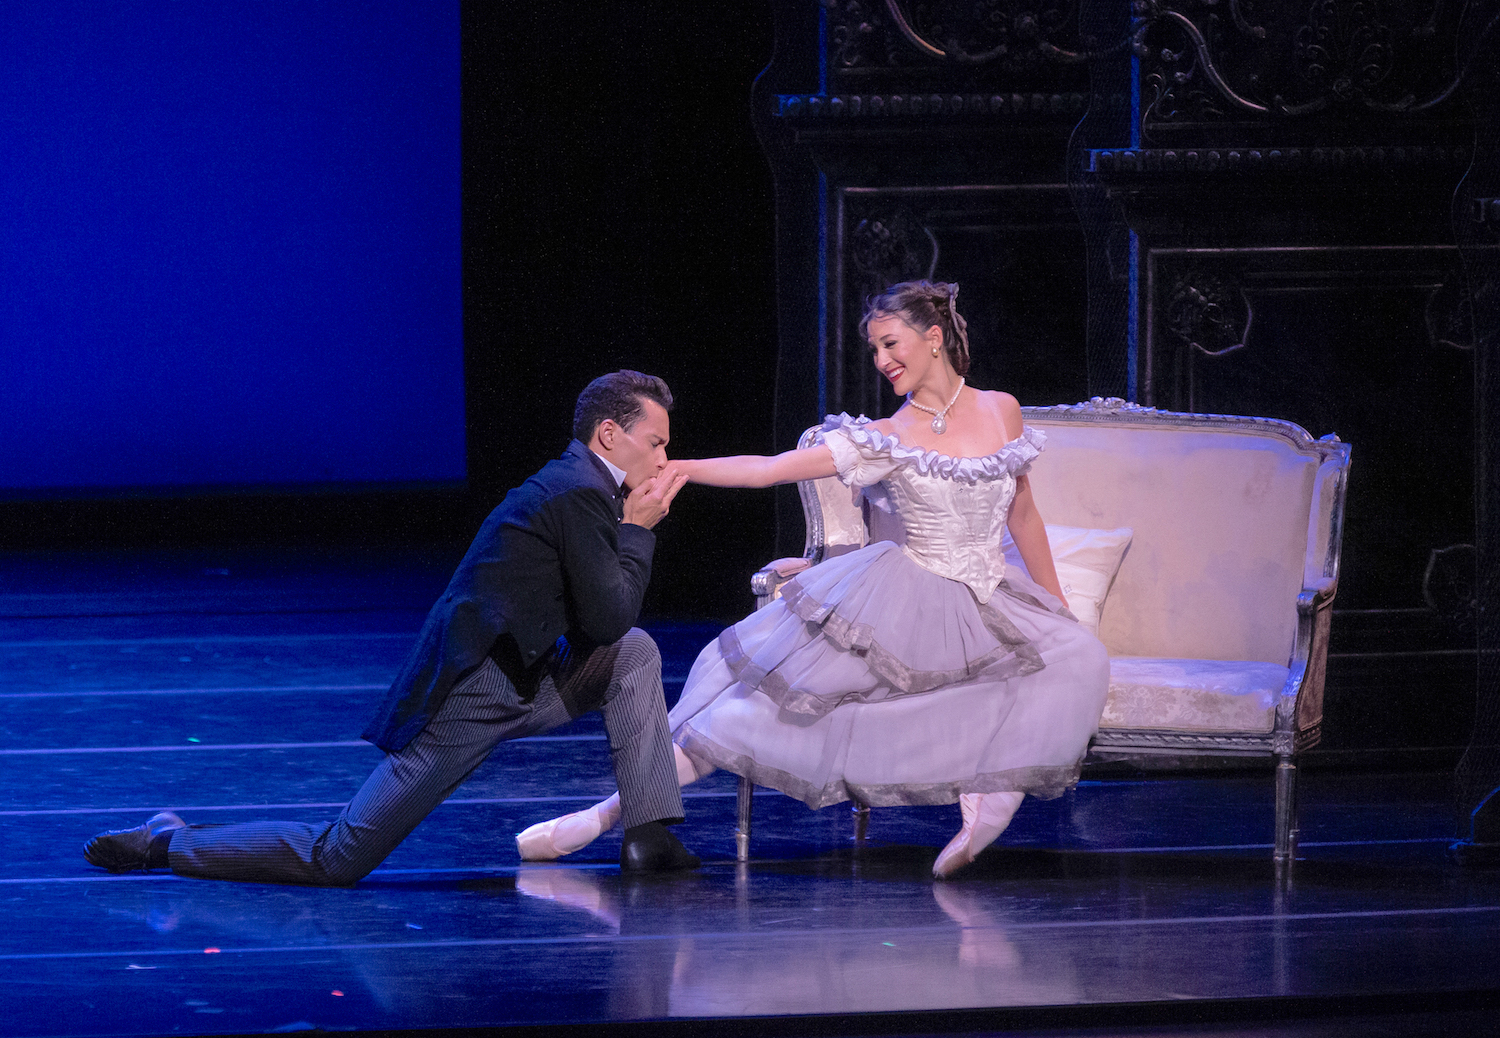 SUSPENSION OF BELIEF: Ballet presents Romantic-era tale of love and death